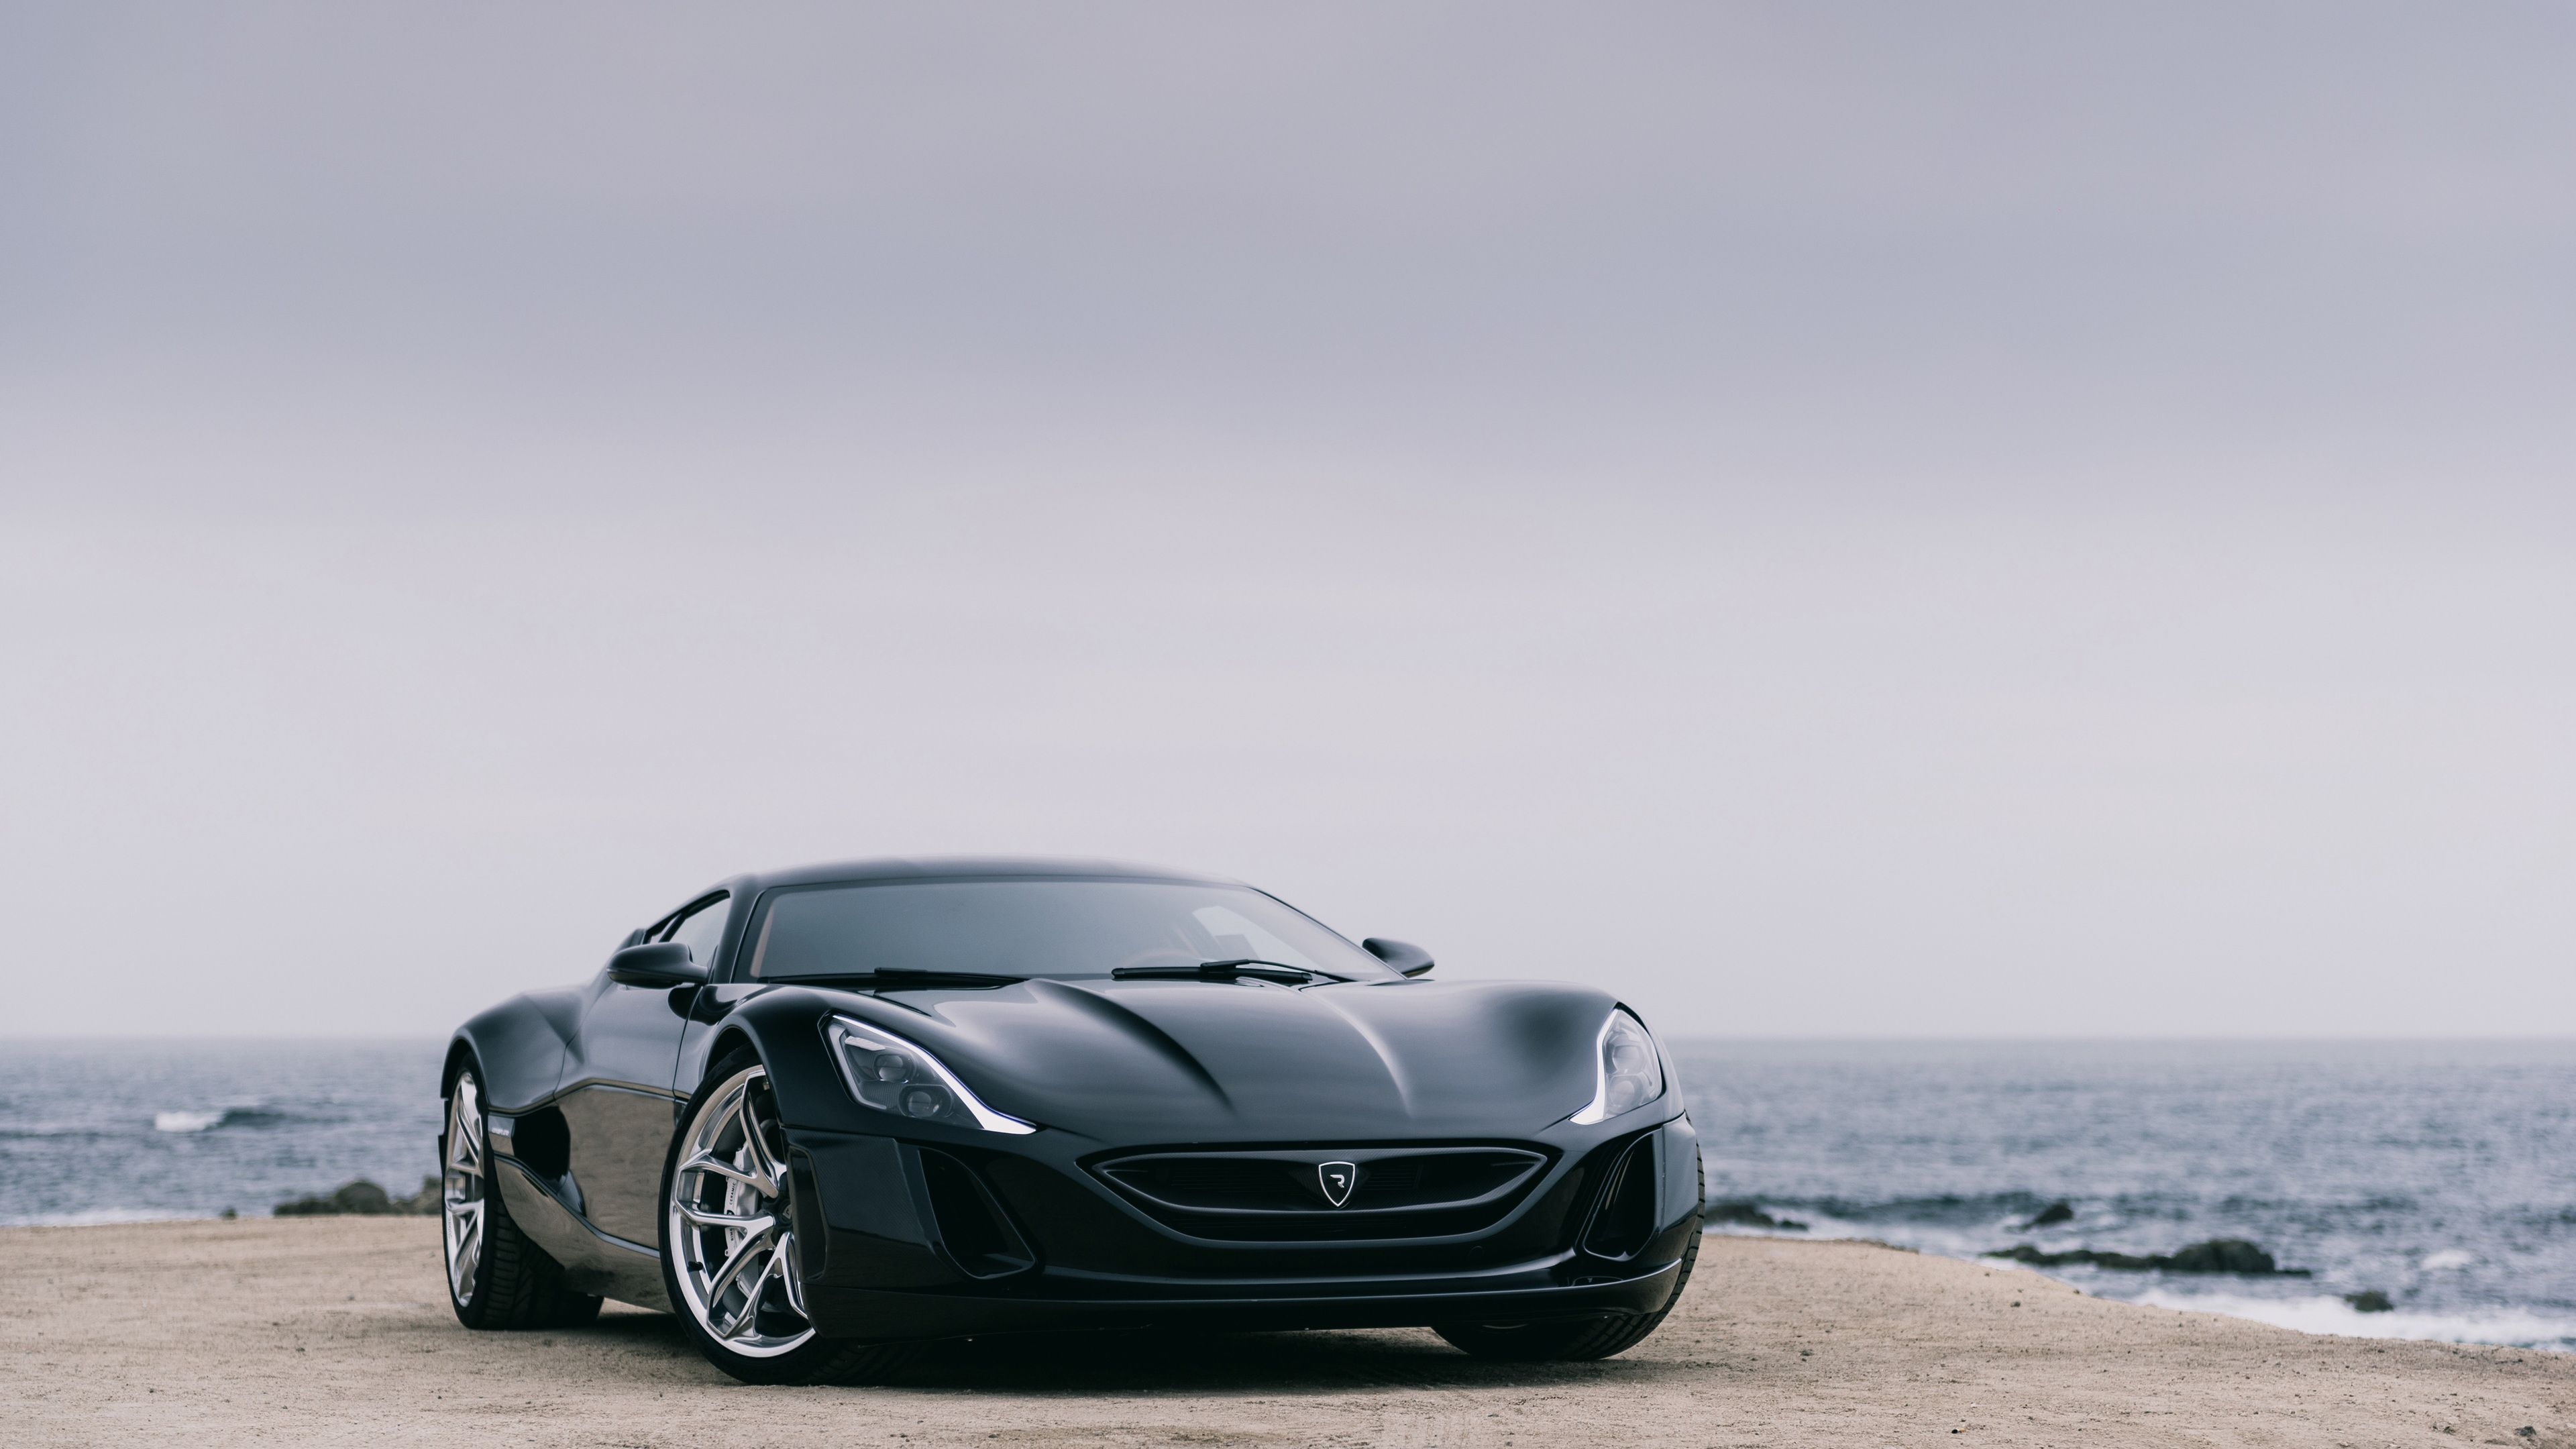 Rimac Concept One 2017 rimac wallpapers, rimac concept one wallpapers, hd-wallpa…